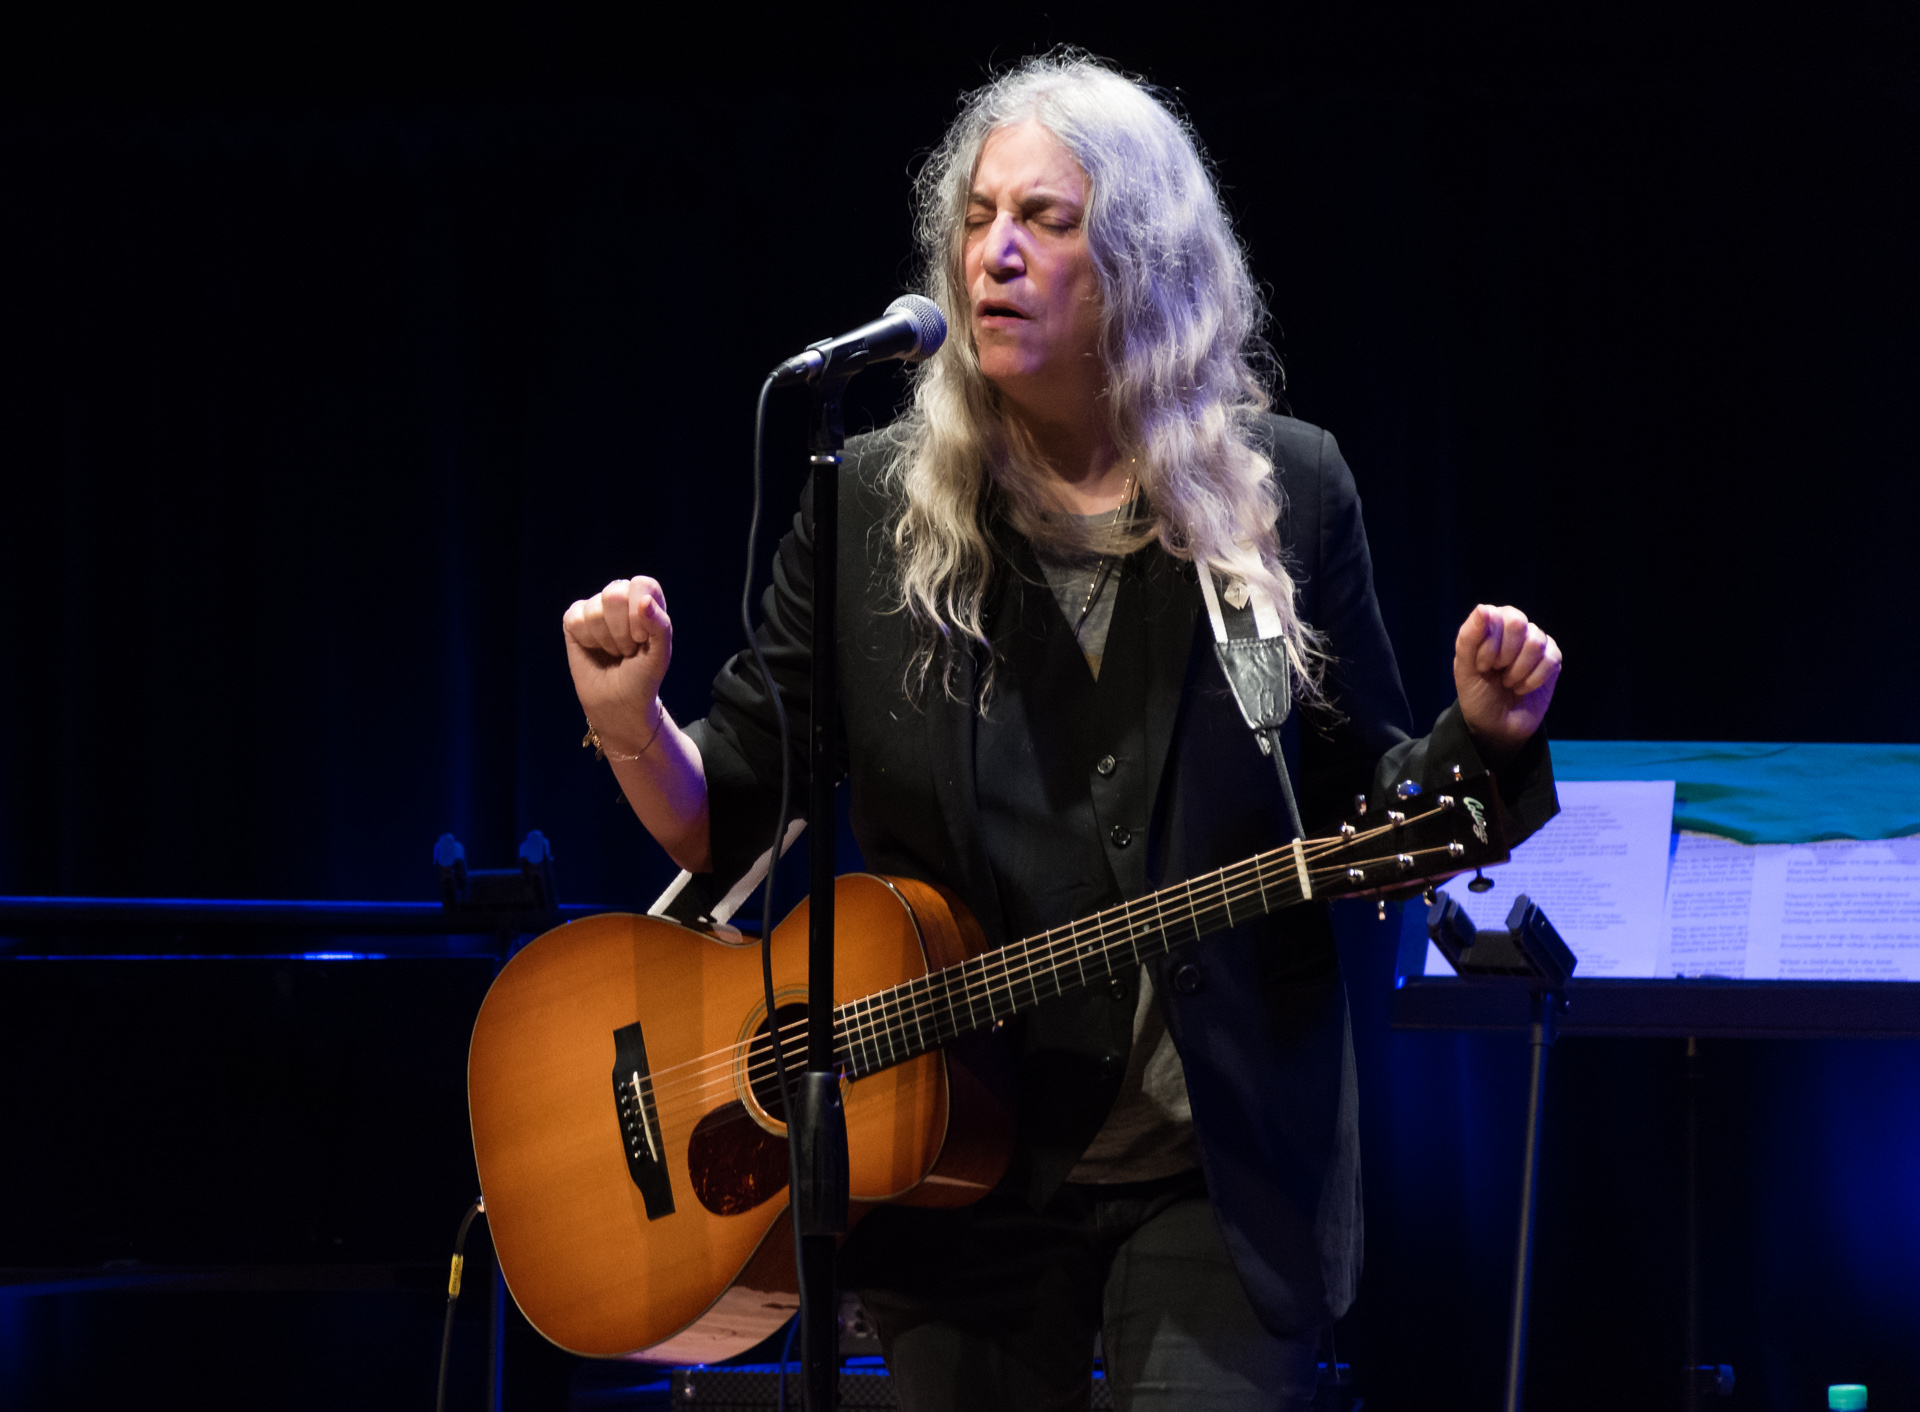 Patti Smith sobre el escenario